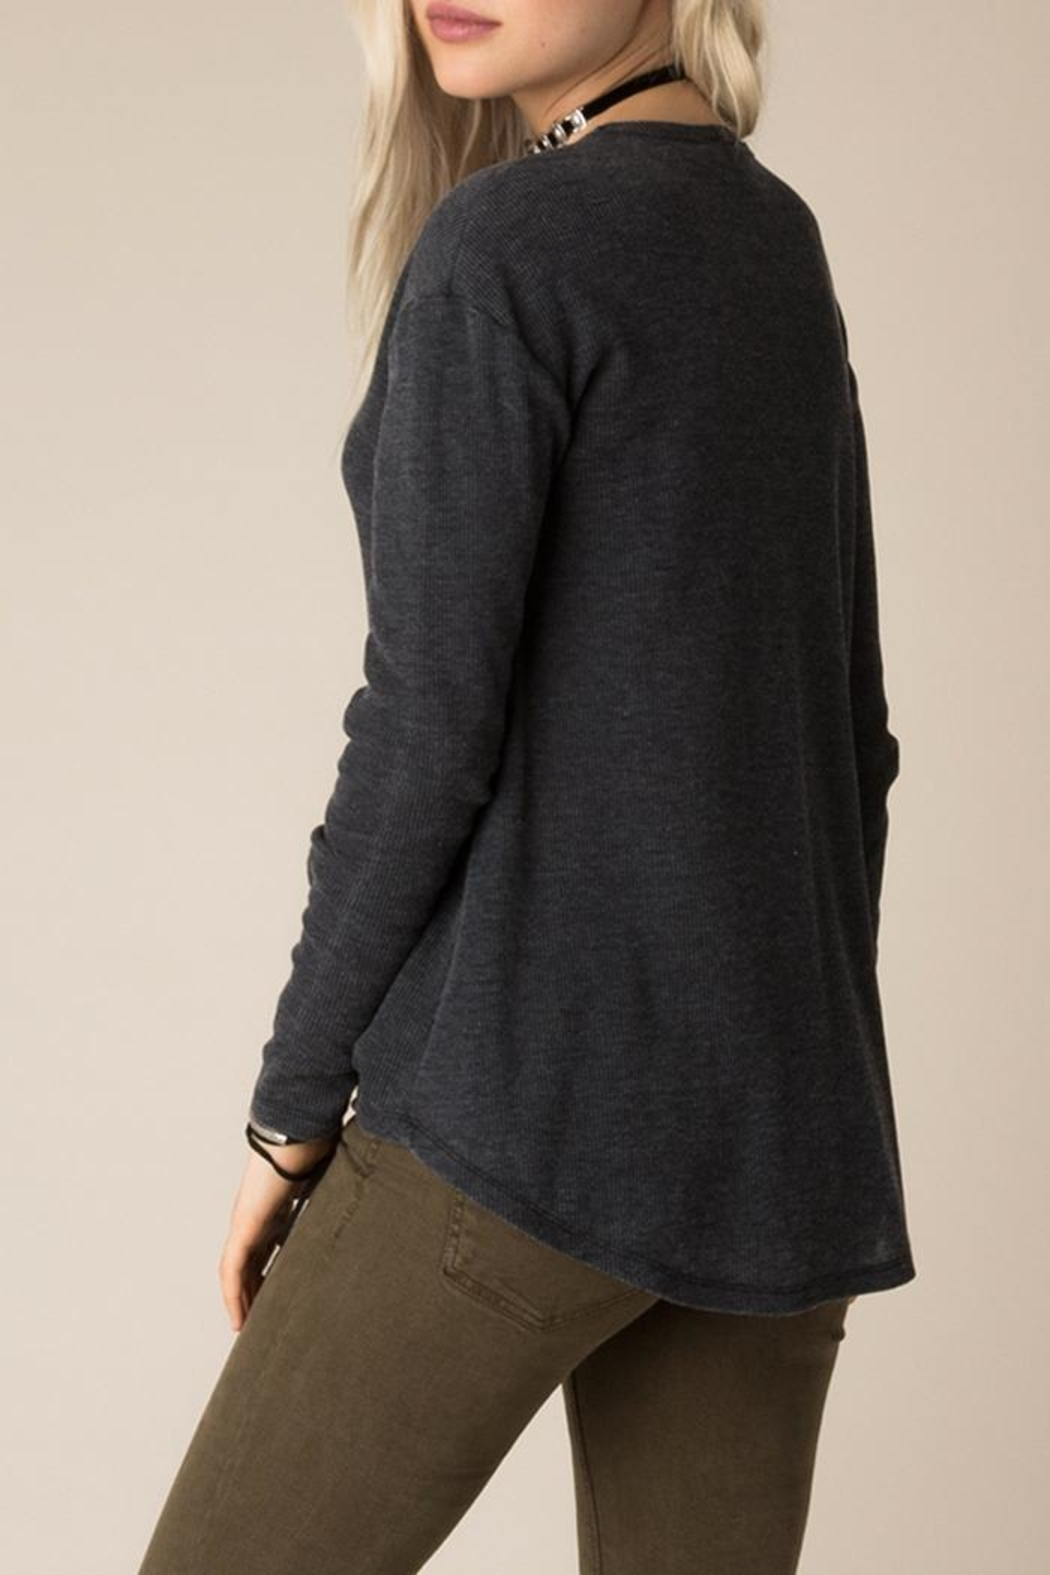 White Crow Burnout Thermal Top - Front Full Image